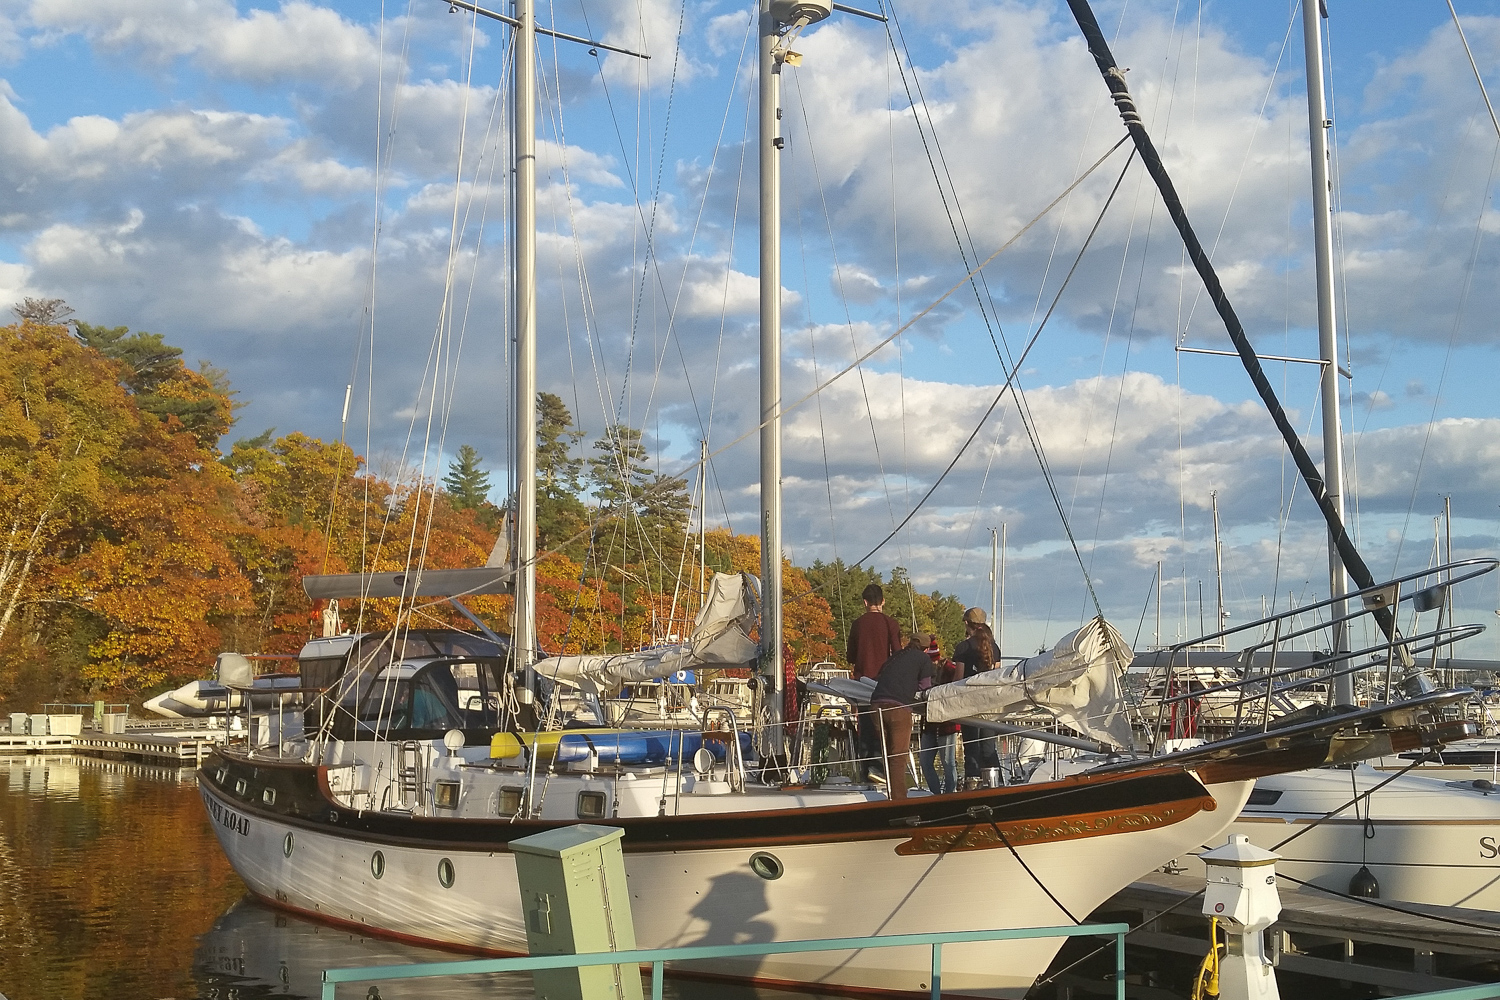 Our Challenge - The 52' Abbey Road is an excellent platform for small groups and we will continue sailing her into the foreseeable future. However, we would like to take more kids sailing on Lake Superior and we are not able to do this with the Abbey Road alone.